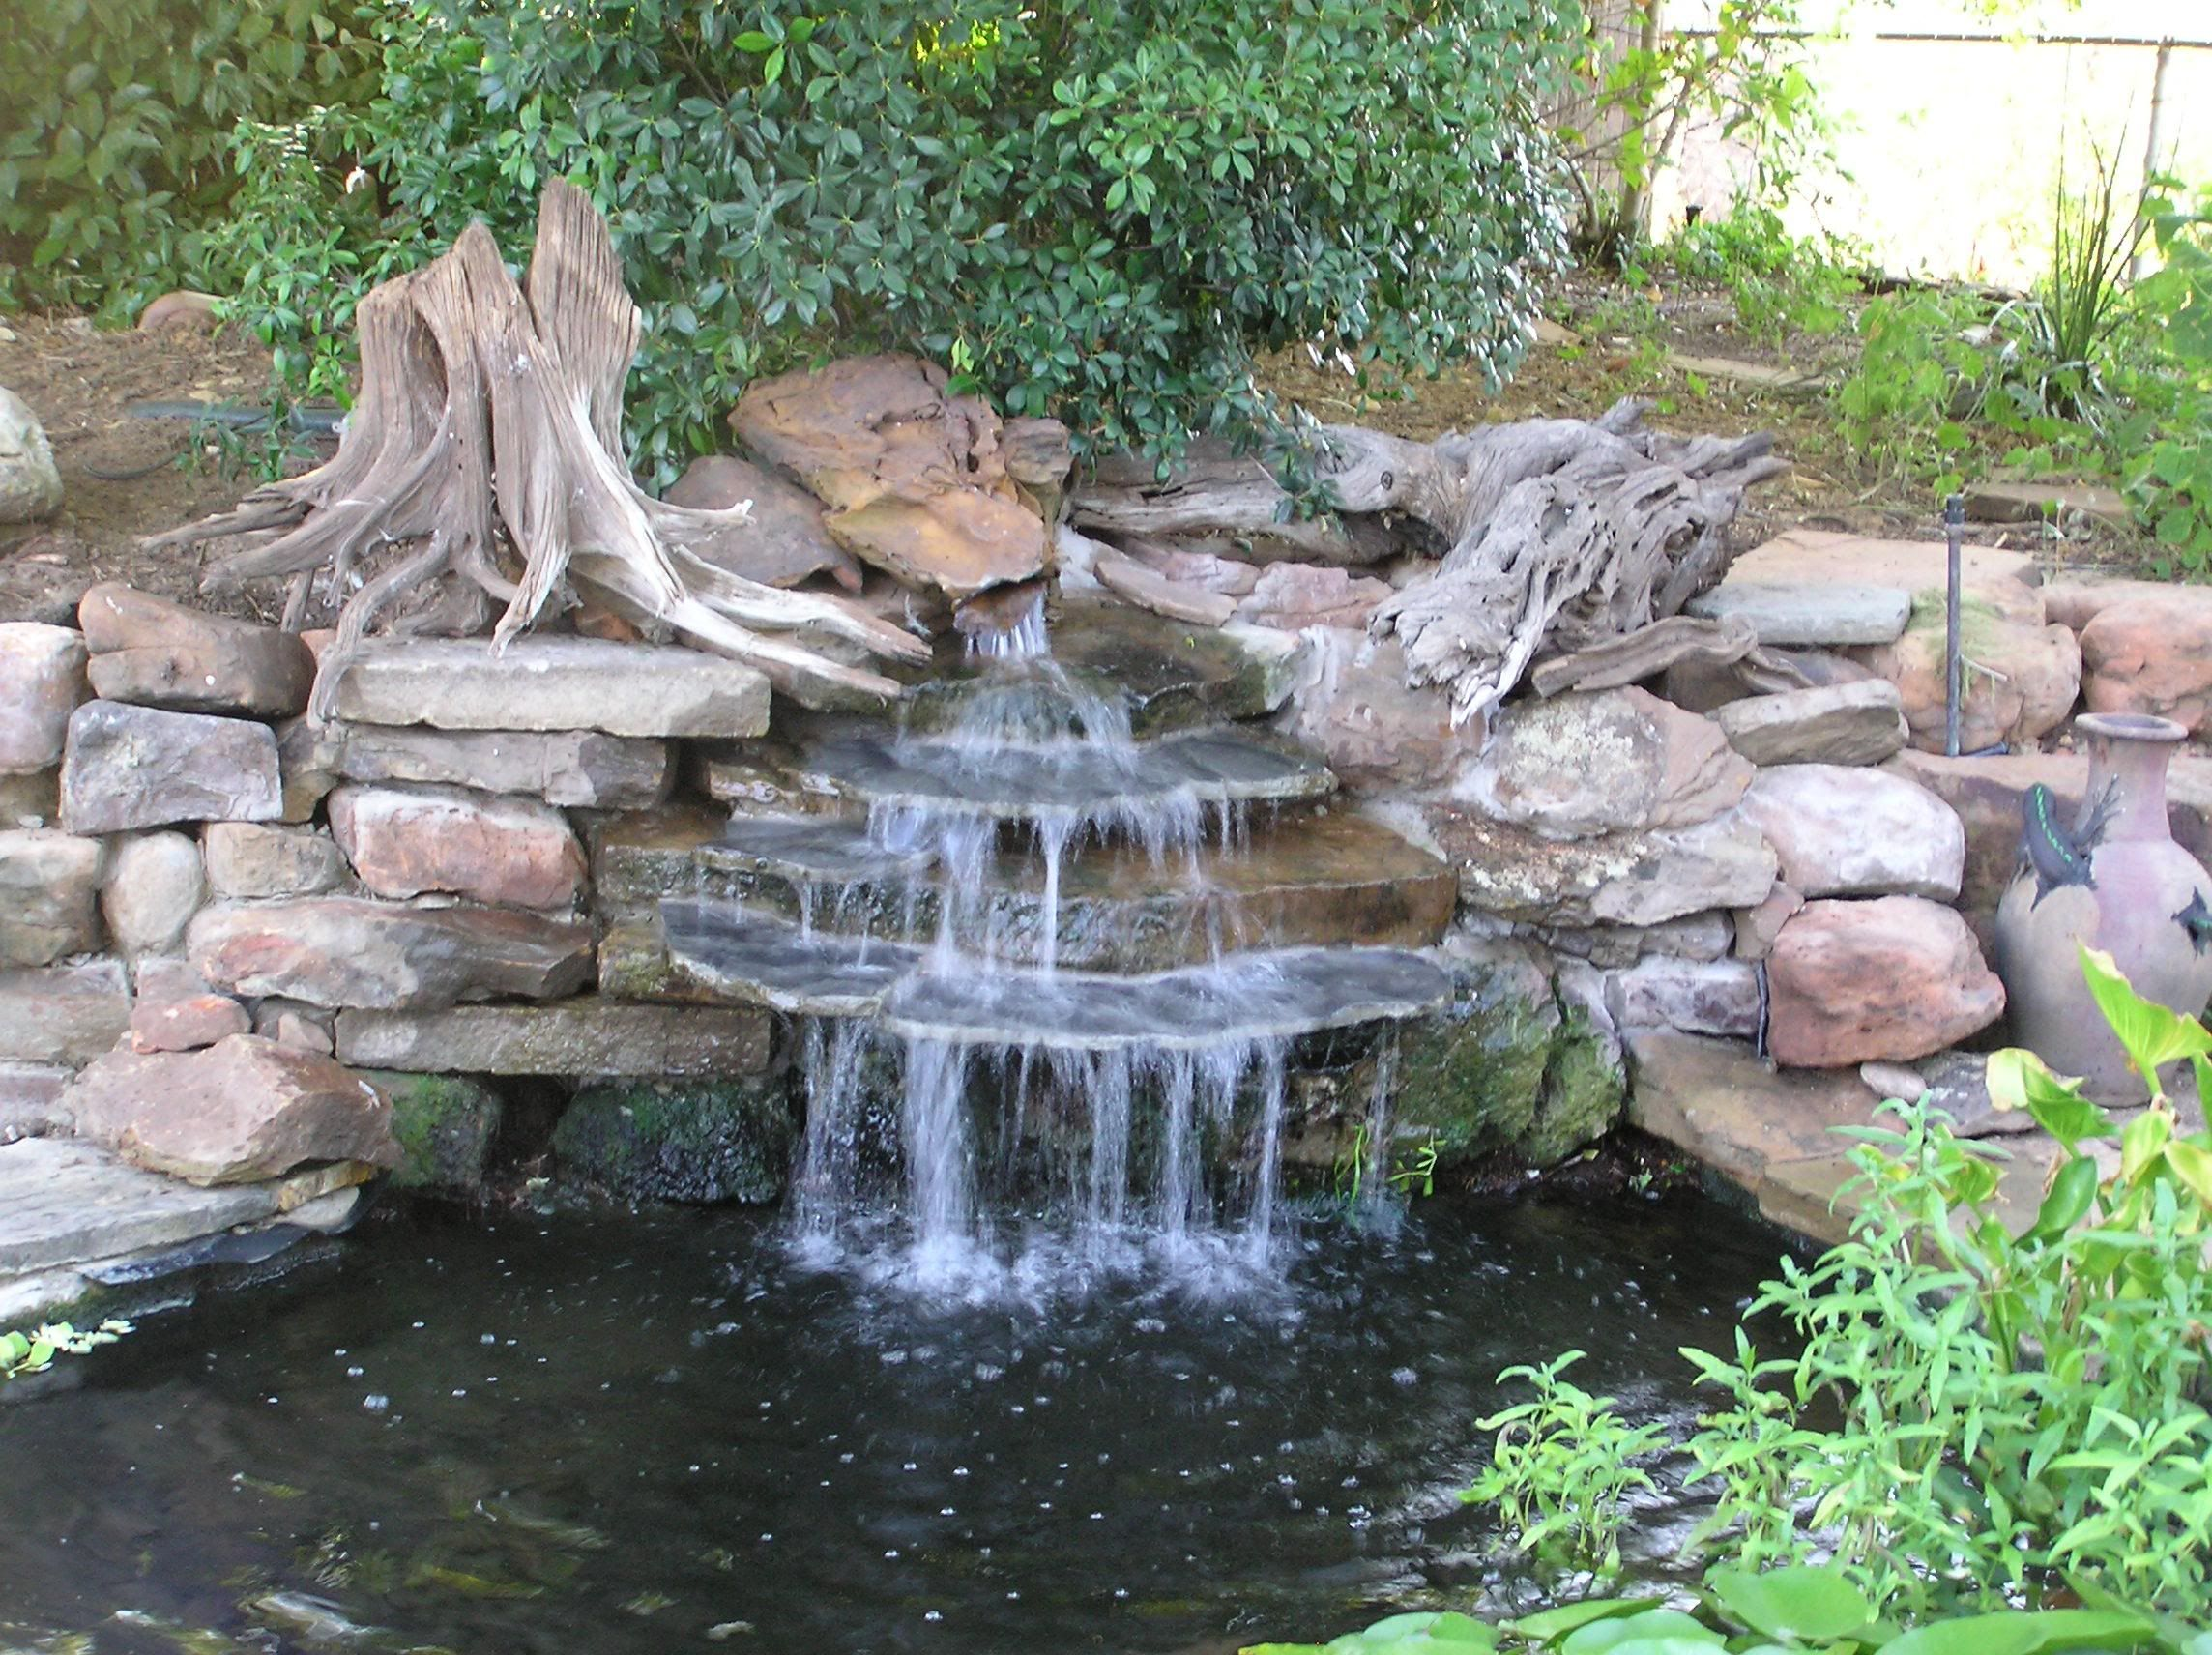 Landscape Fountains Garden Waterfall Design 5 E1281724141389 - garden pond designs waterfalls